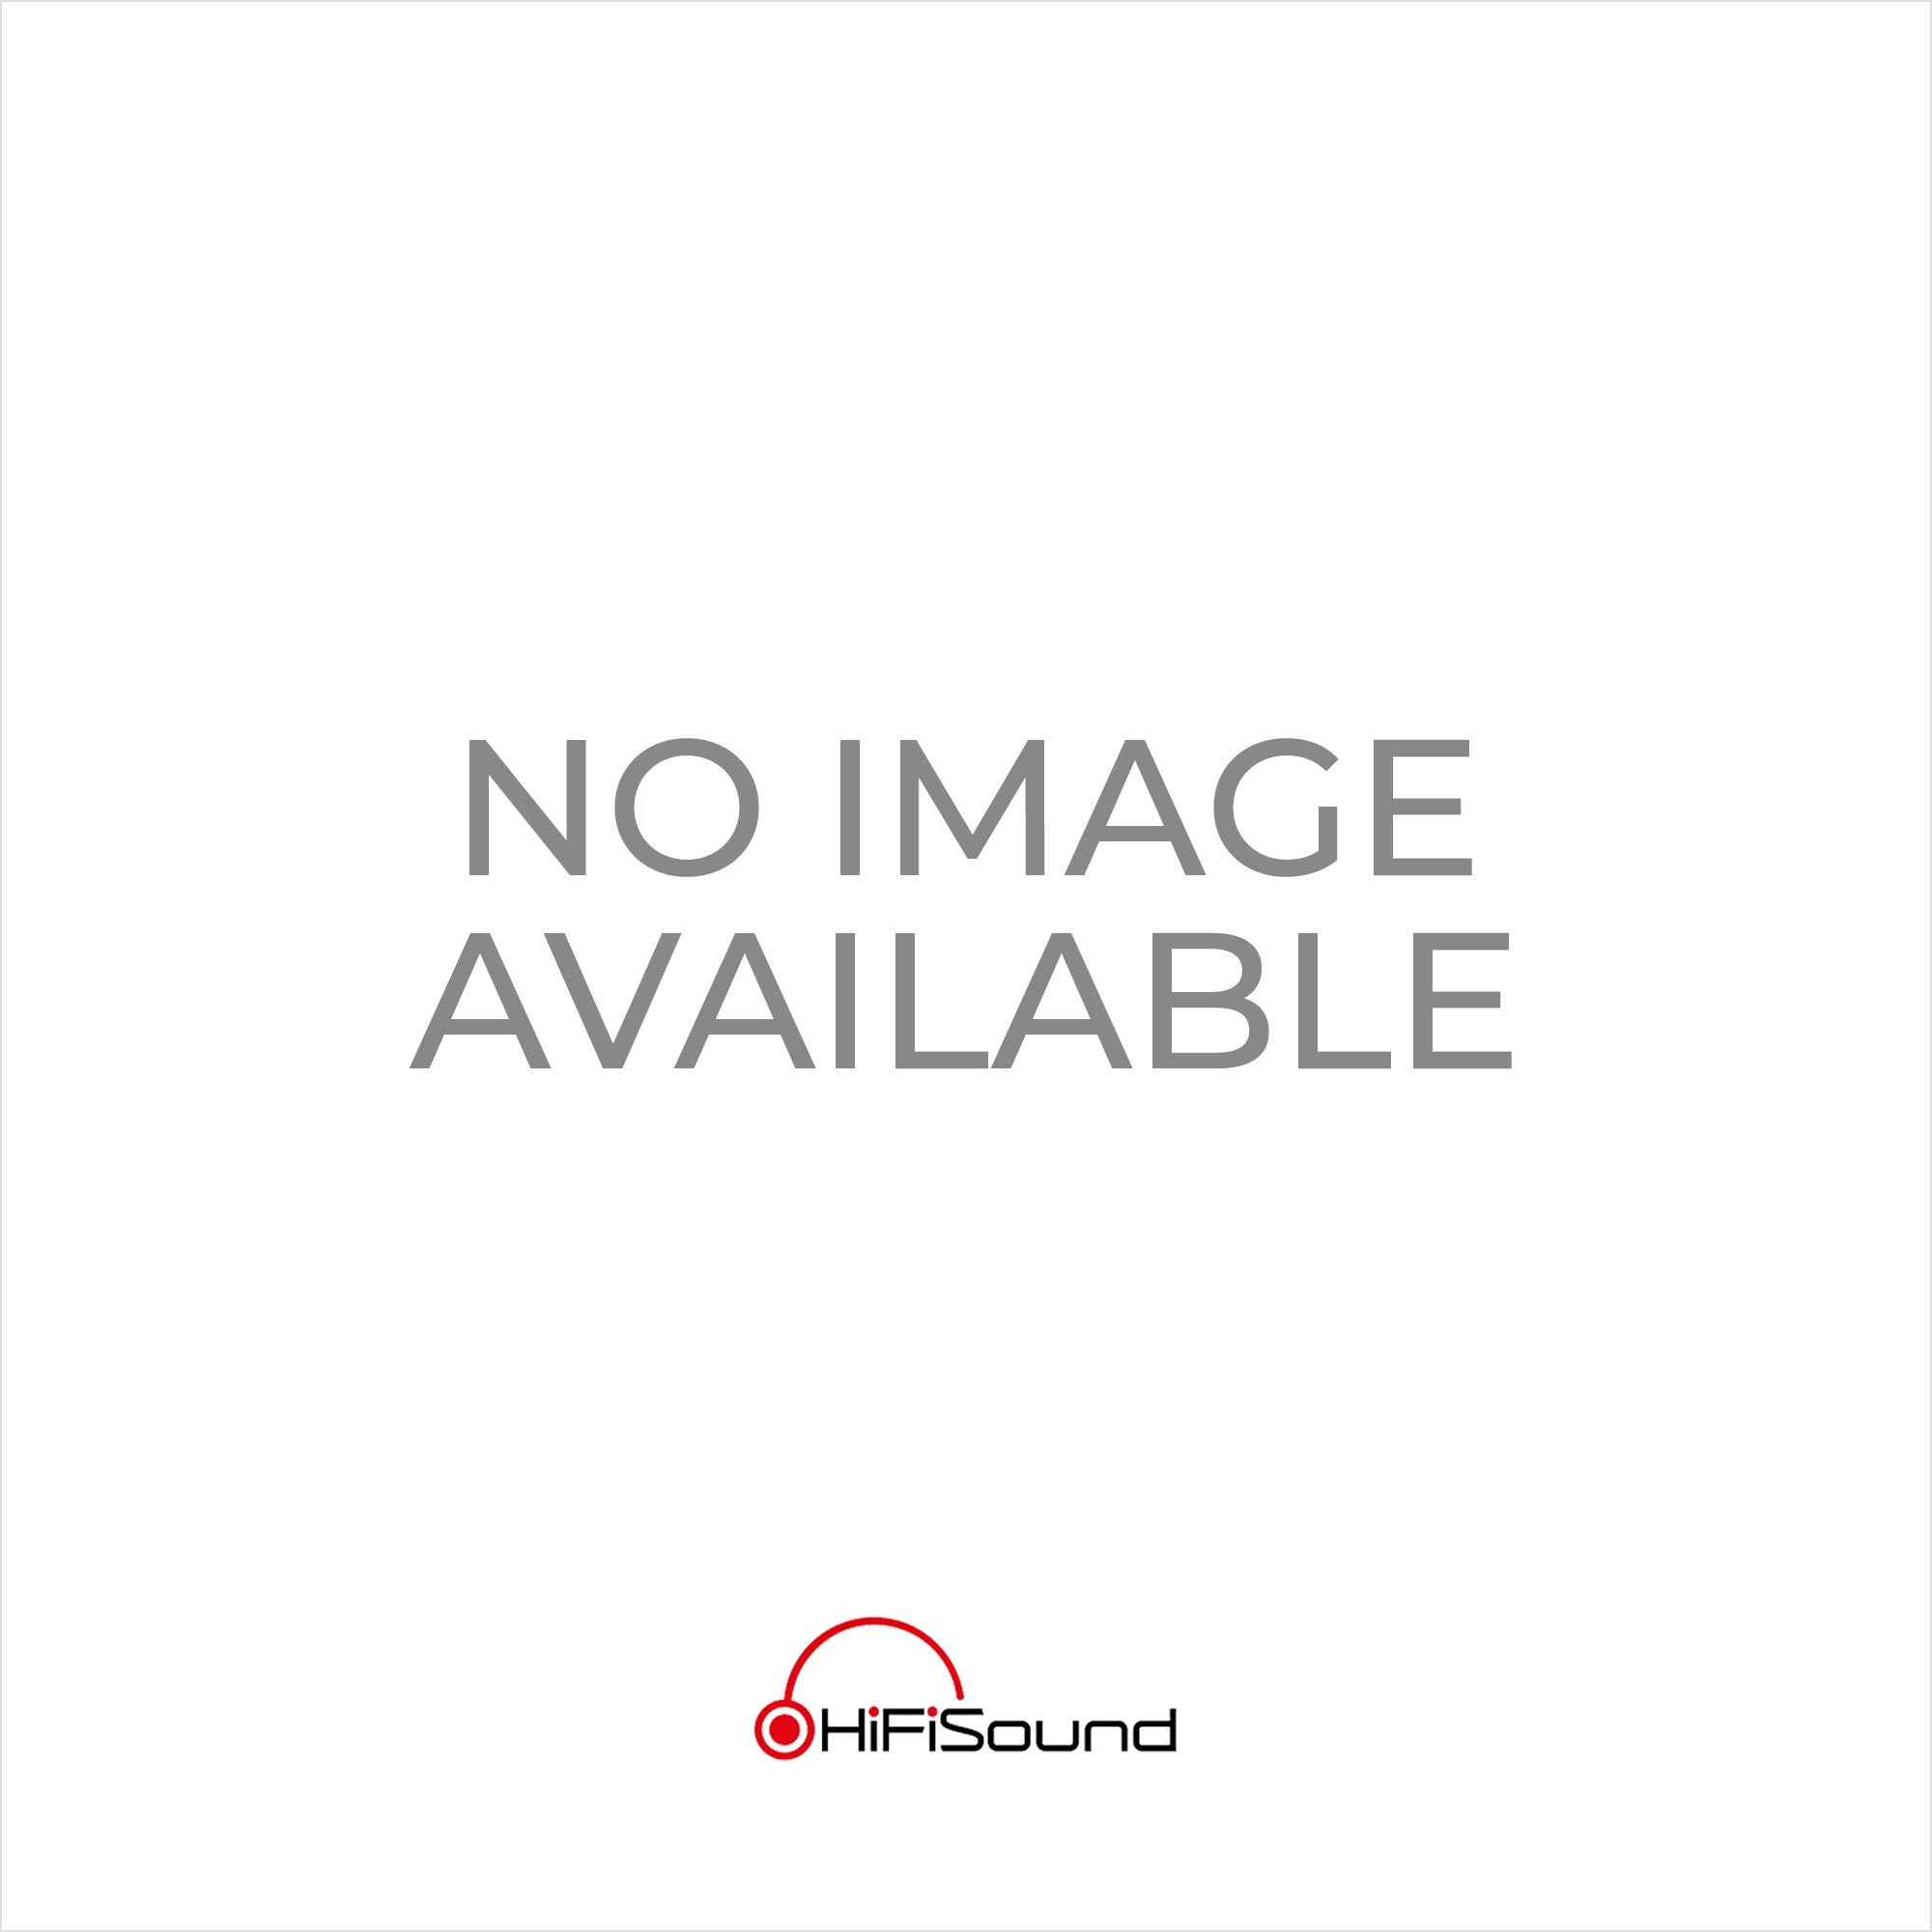 Ortofon SPU Synergy A Moving Coil Cartridge and headshell